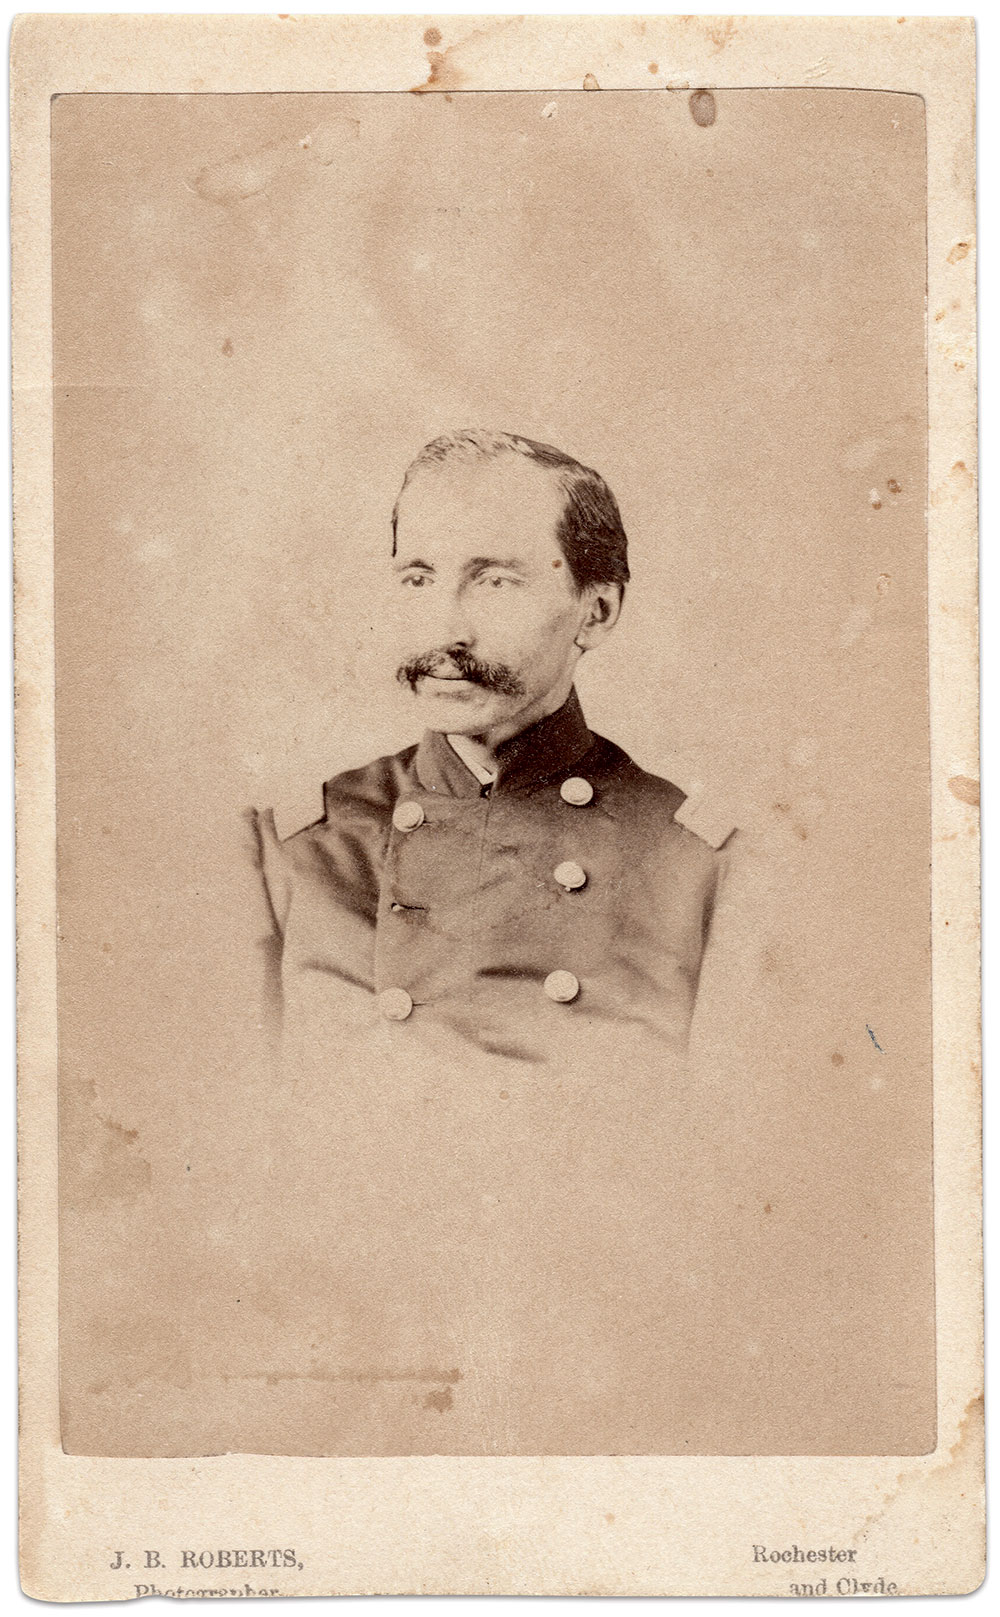 Carte de visite by J.B. Roberts of Rochester, N.Y. Author's collection.